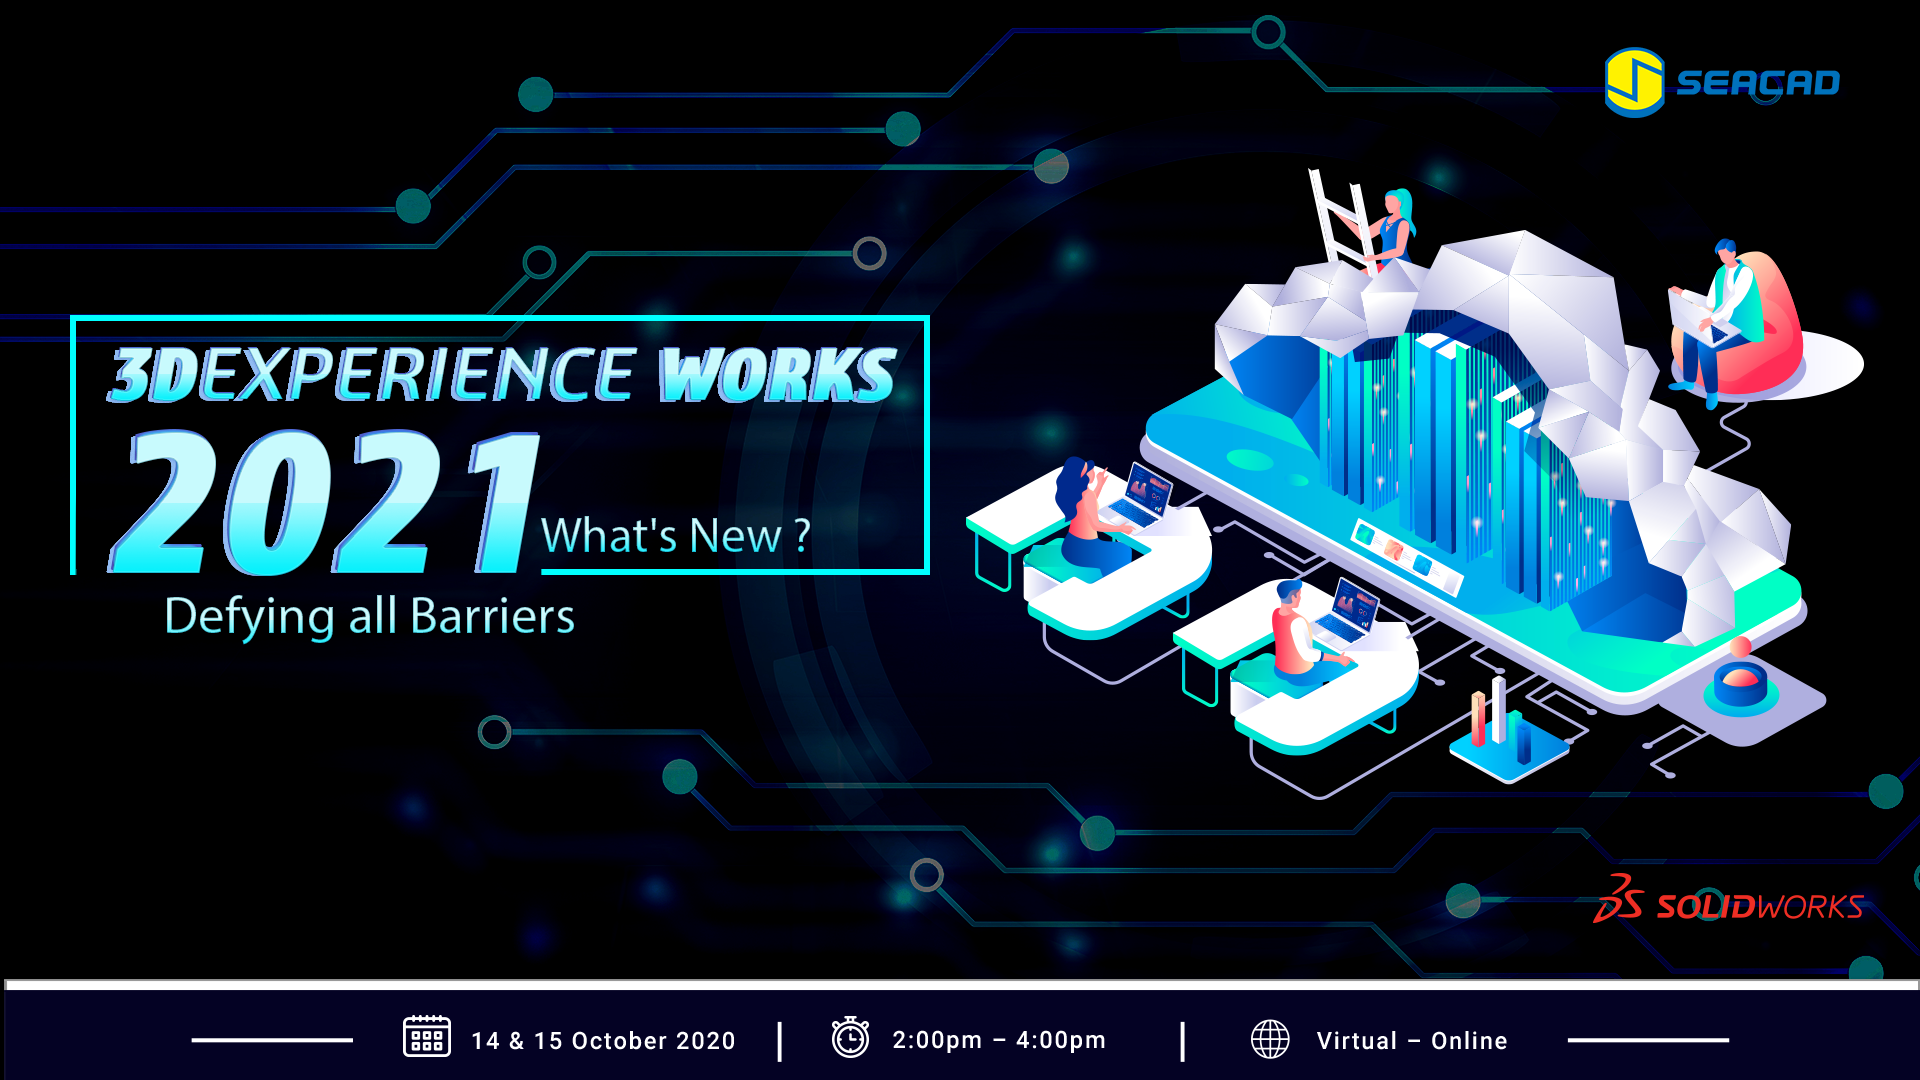 3DEXPERIENCE Works 2021 Event